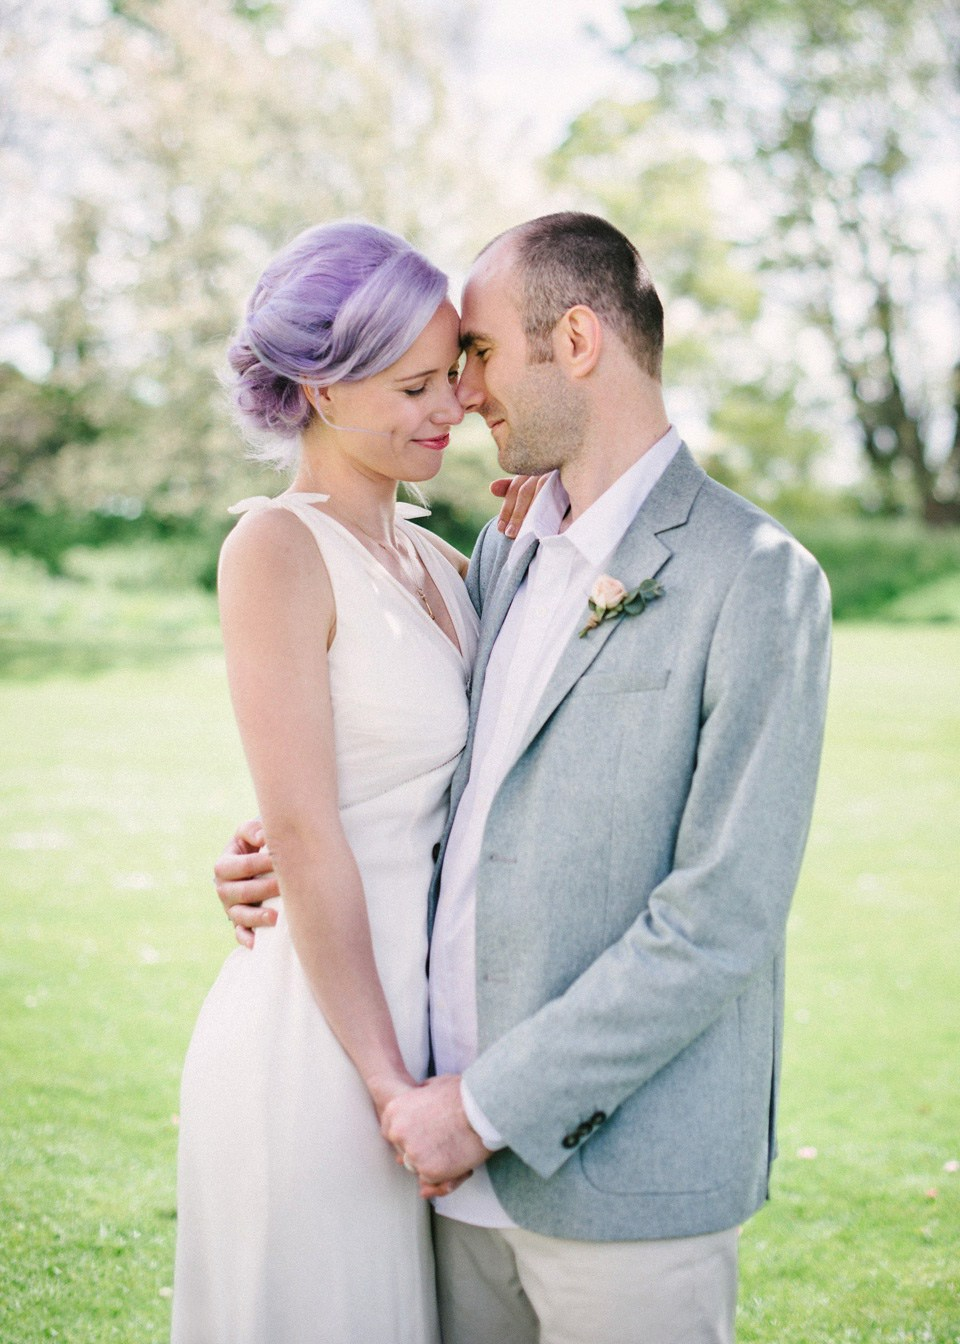 wpid377772-lilac-hair-pastel-flowers-intimage-vintage-inspired-spring-pub-wedding-18